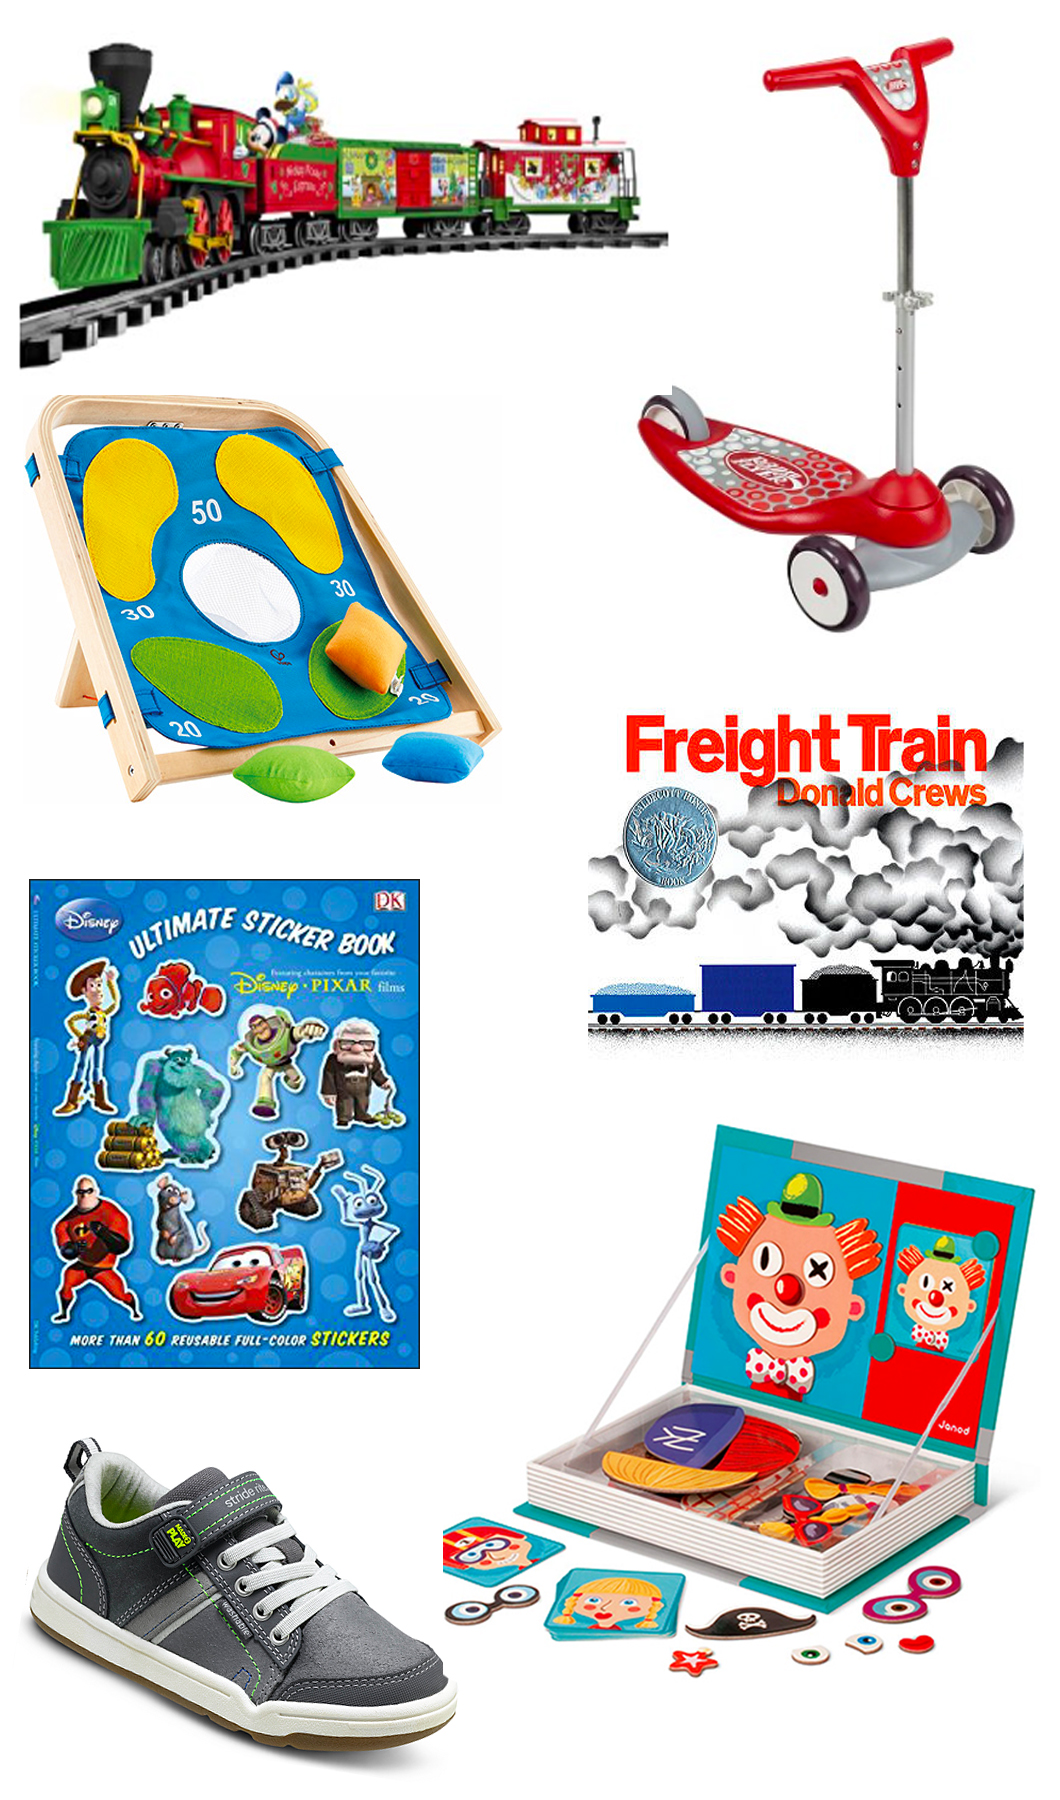 3-4 year old gift guide for boys